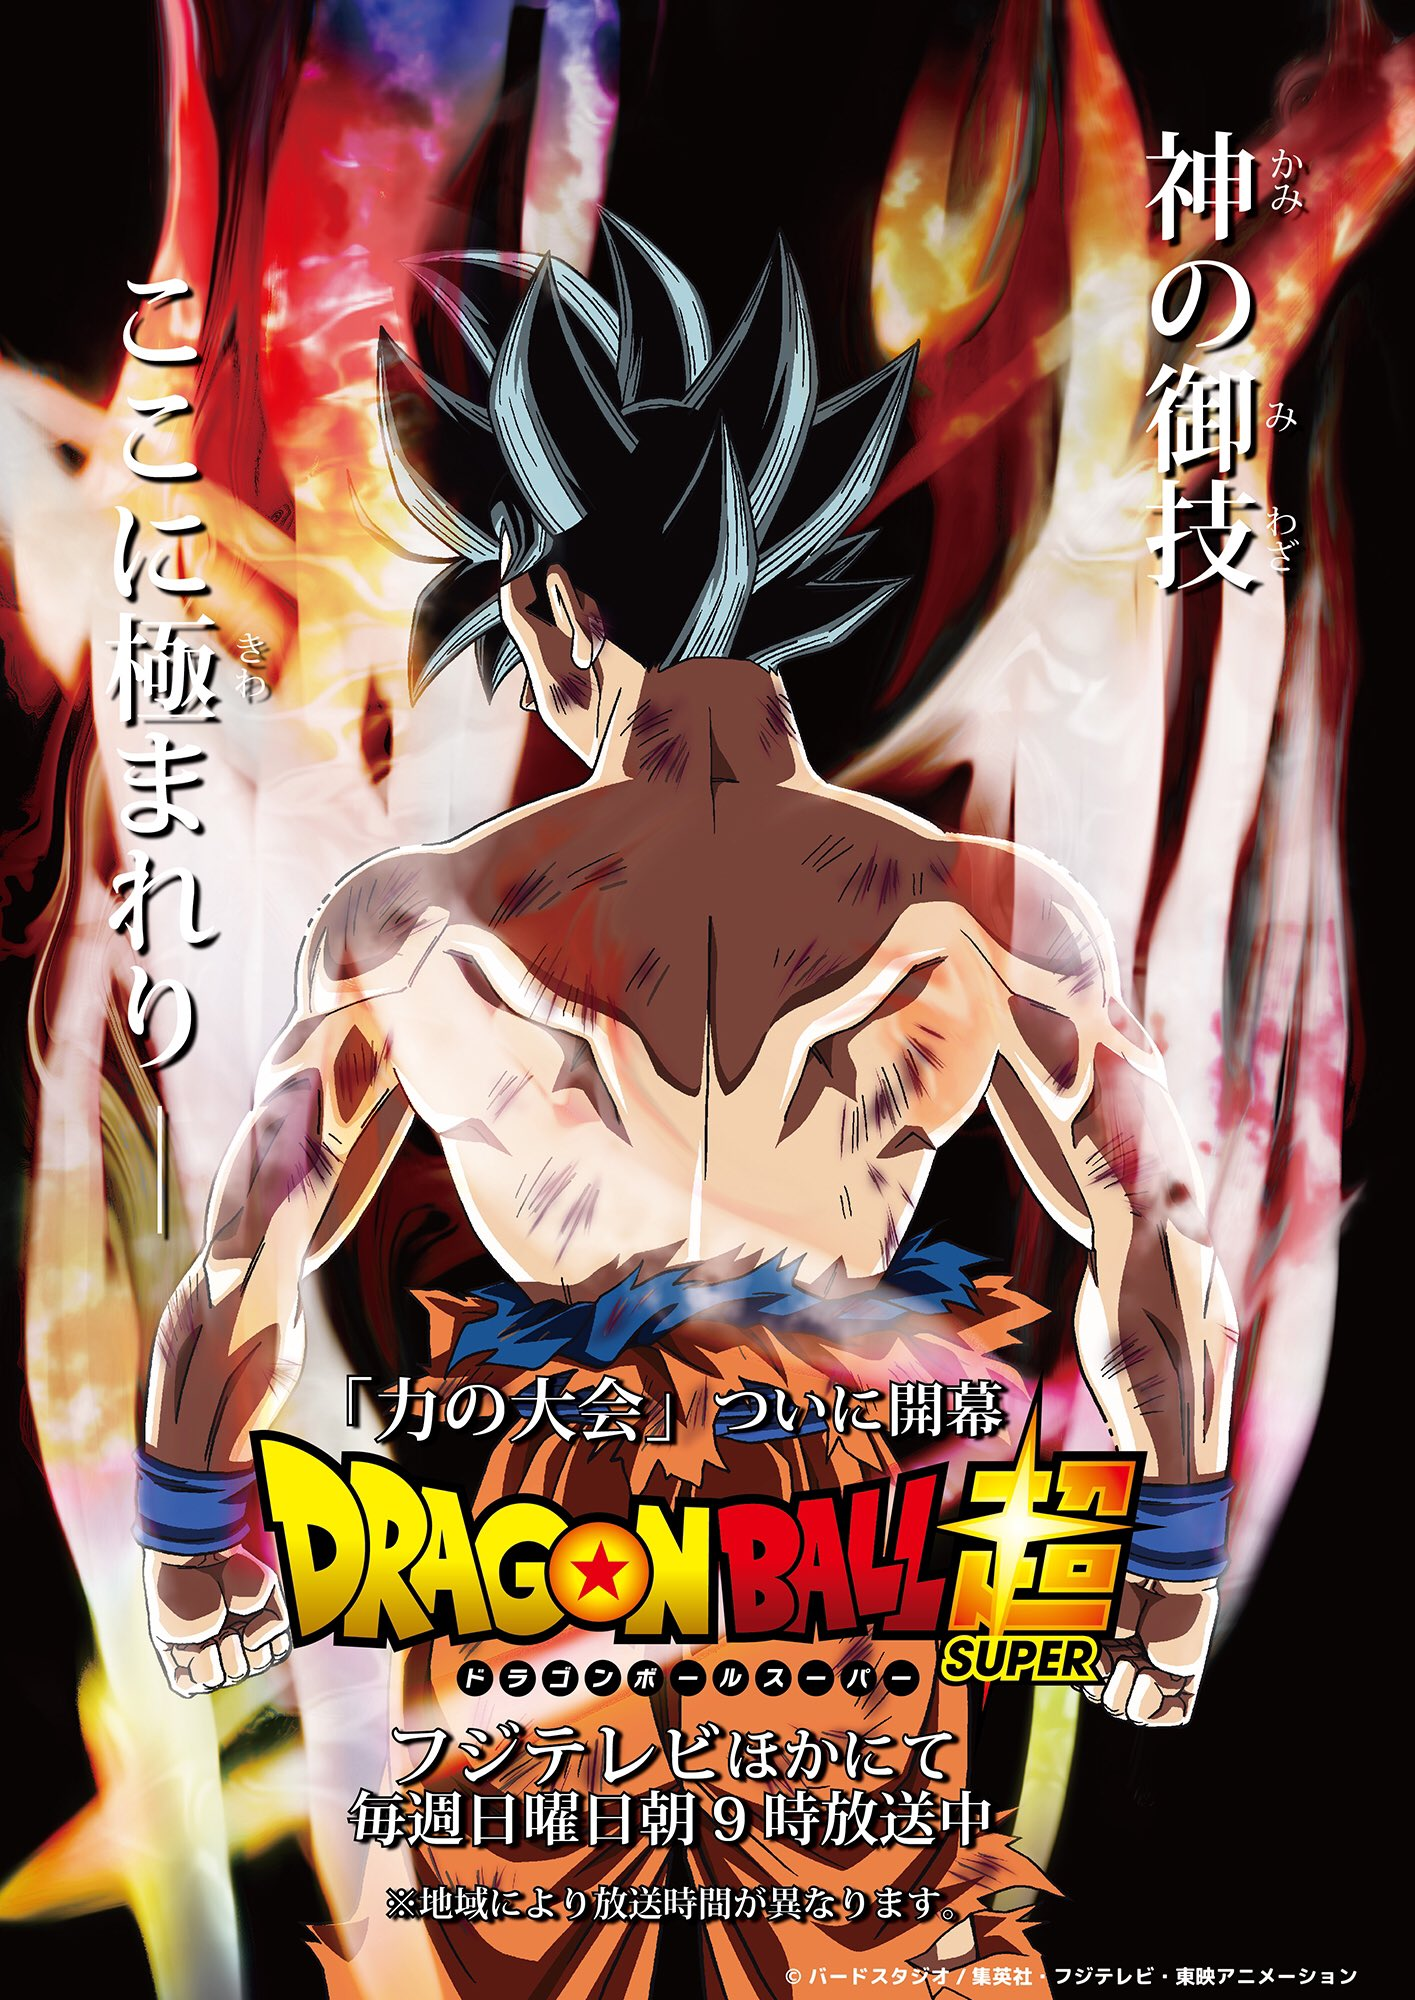 [Manga y Anime] Dragon Ball Super - Página 9 DDjdxUUXsAAw6vZ